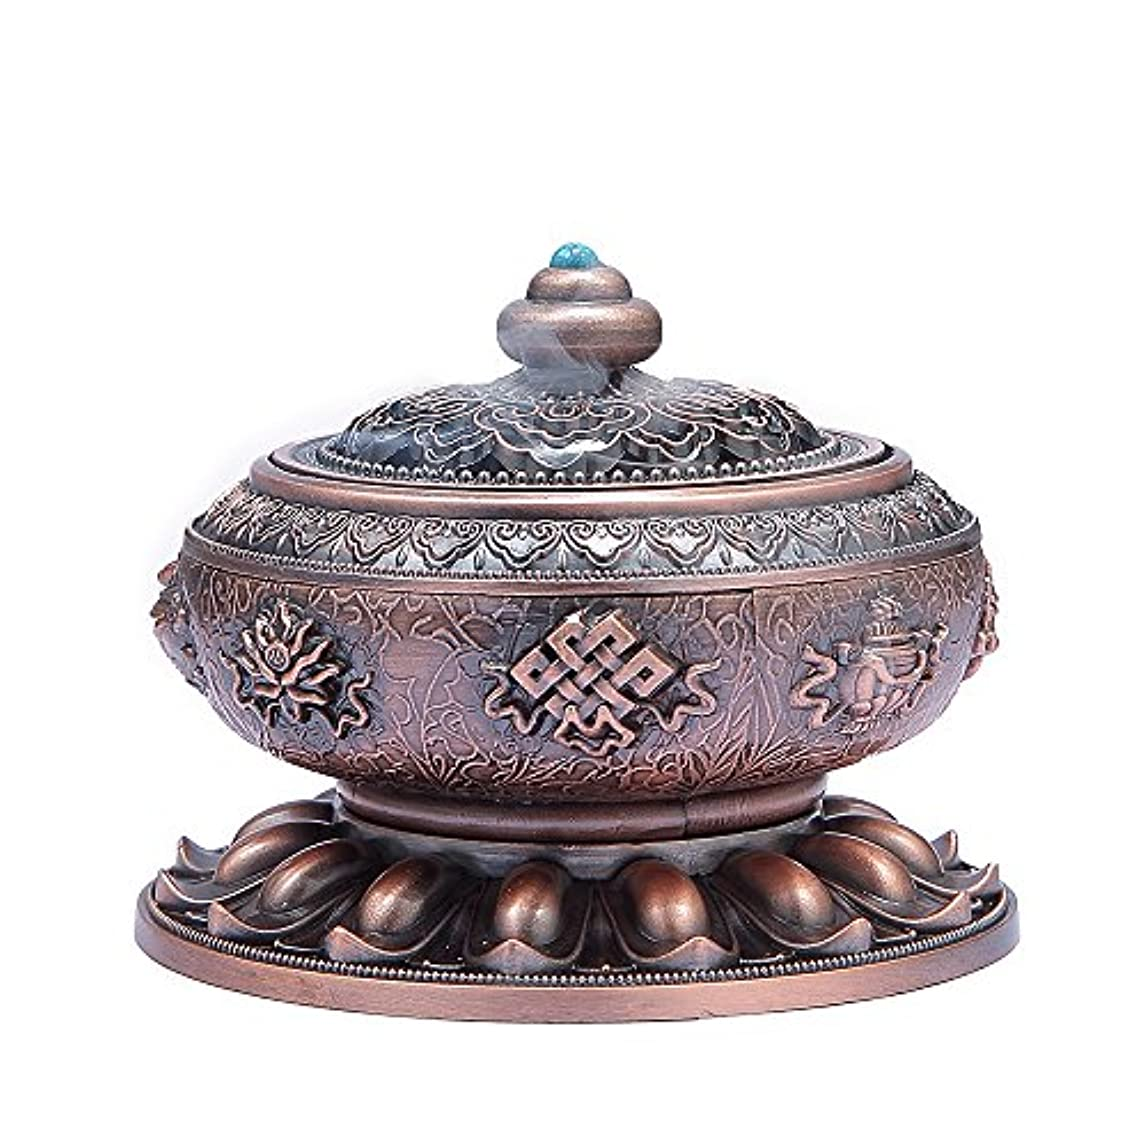 新しさ複雑オートメーションMEDOOSKY Large Incense Holder Burner Tibet Lotus Copper Alloy( Stick/ Cone/ Coil Incense)